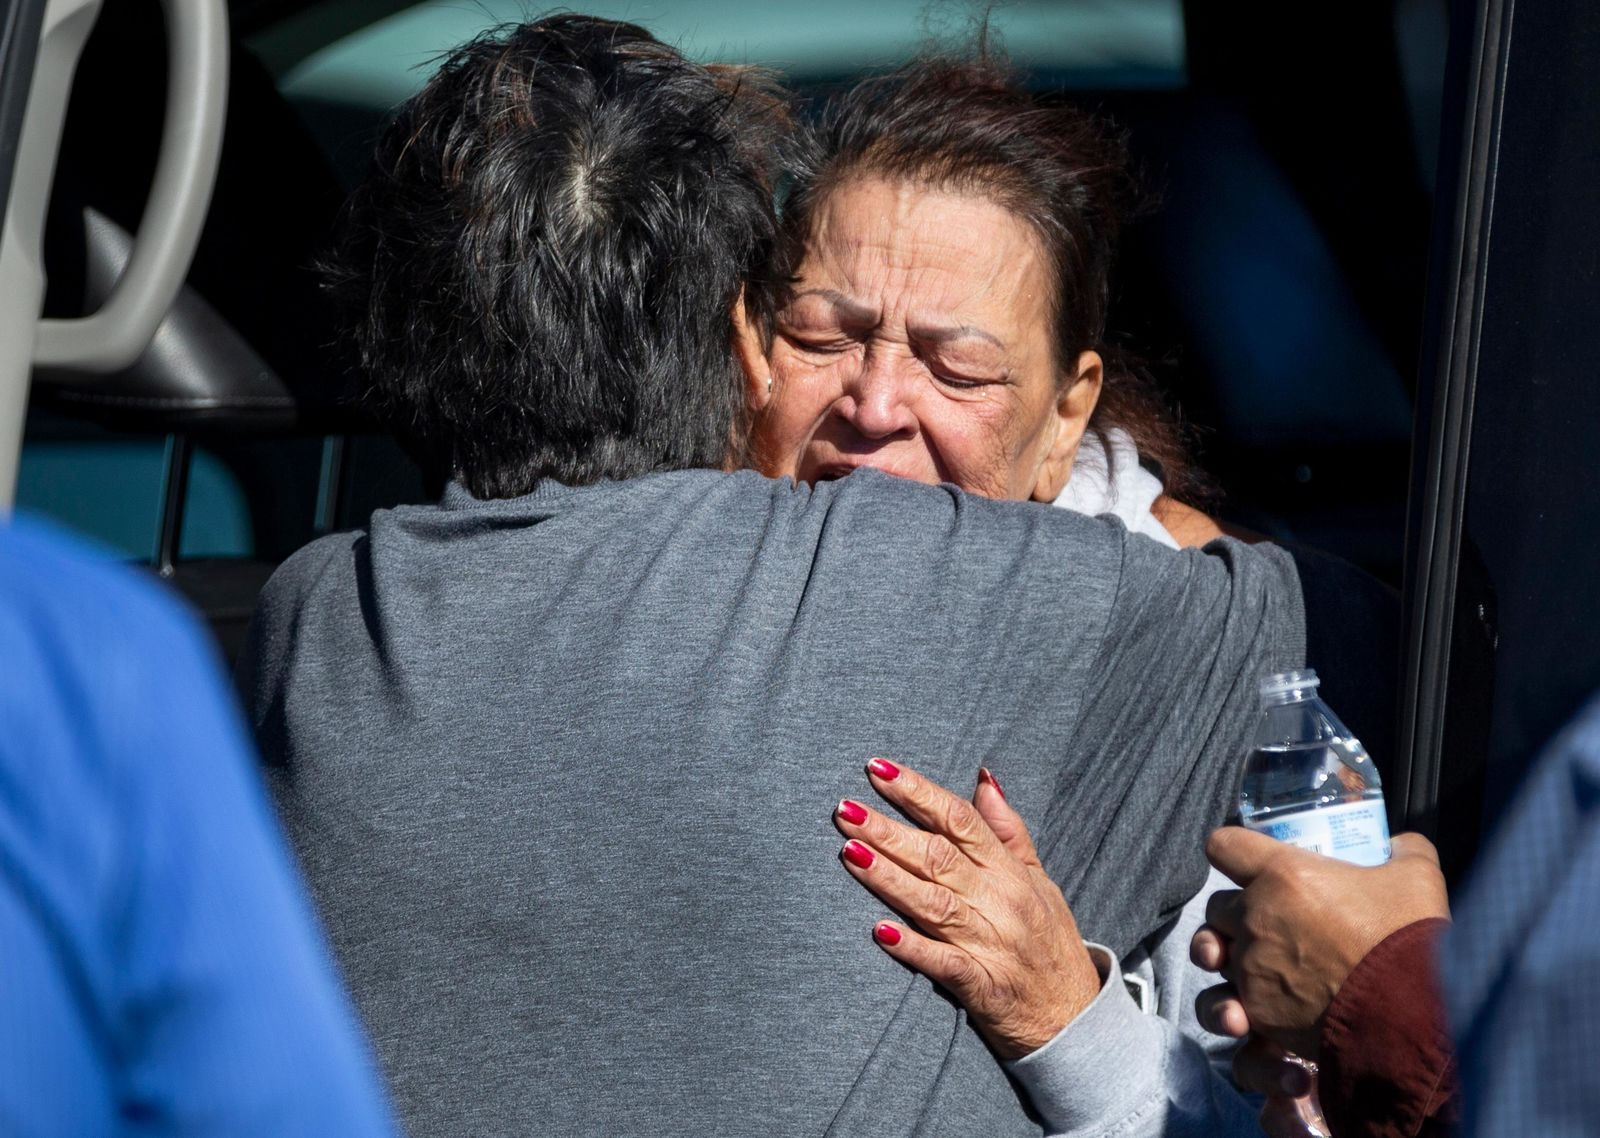 A family member reacts at the scene of a fatal shooting in the parking lot of a Walmart in Duncan, Okla., on Monday, Nov. 18, 2019. (Chris Landsberger/The Oklahoman via AP)